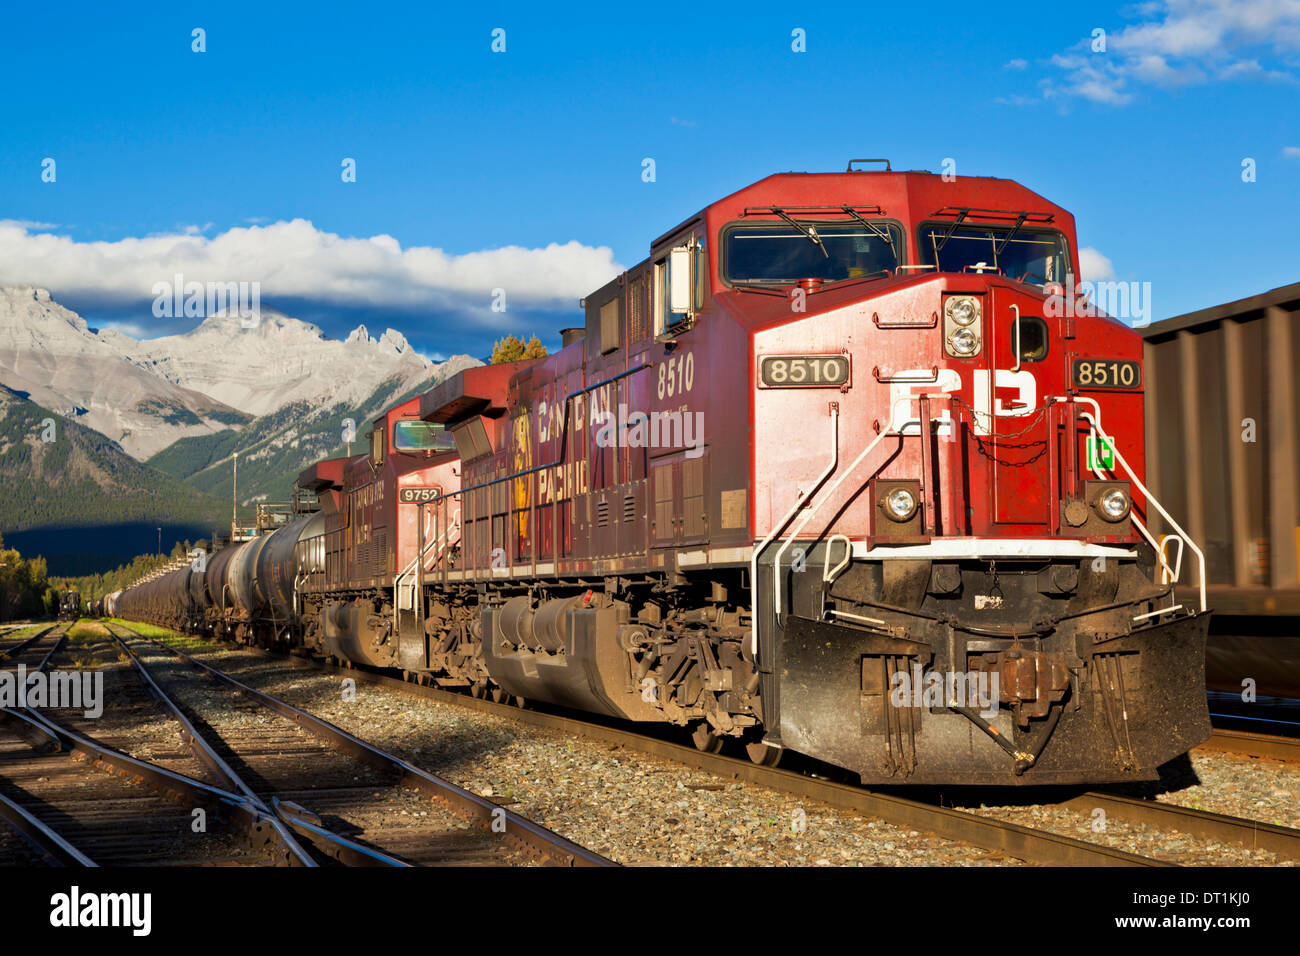 Canadian Pacific freight train locomotive at Banff station, Banff National Park, Canadian Rockies, Alberta, Canada - Stock Image